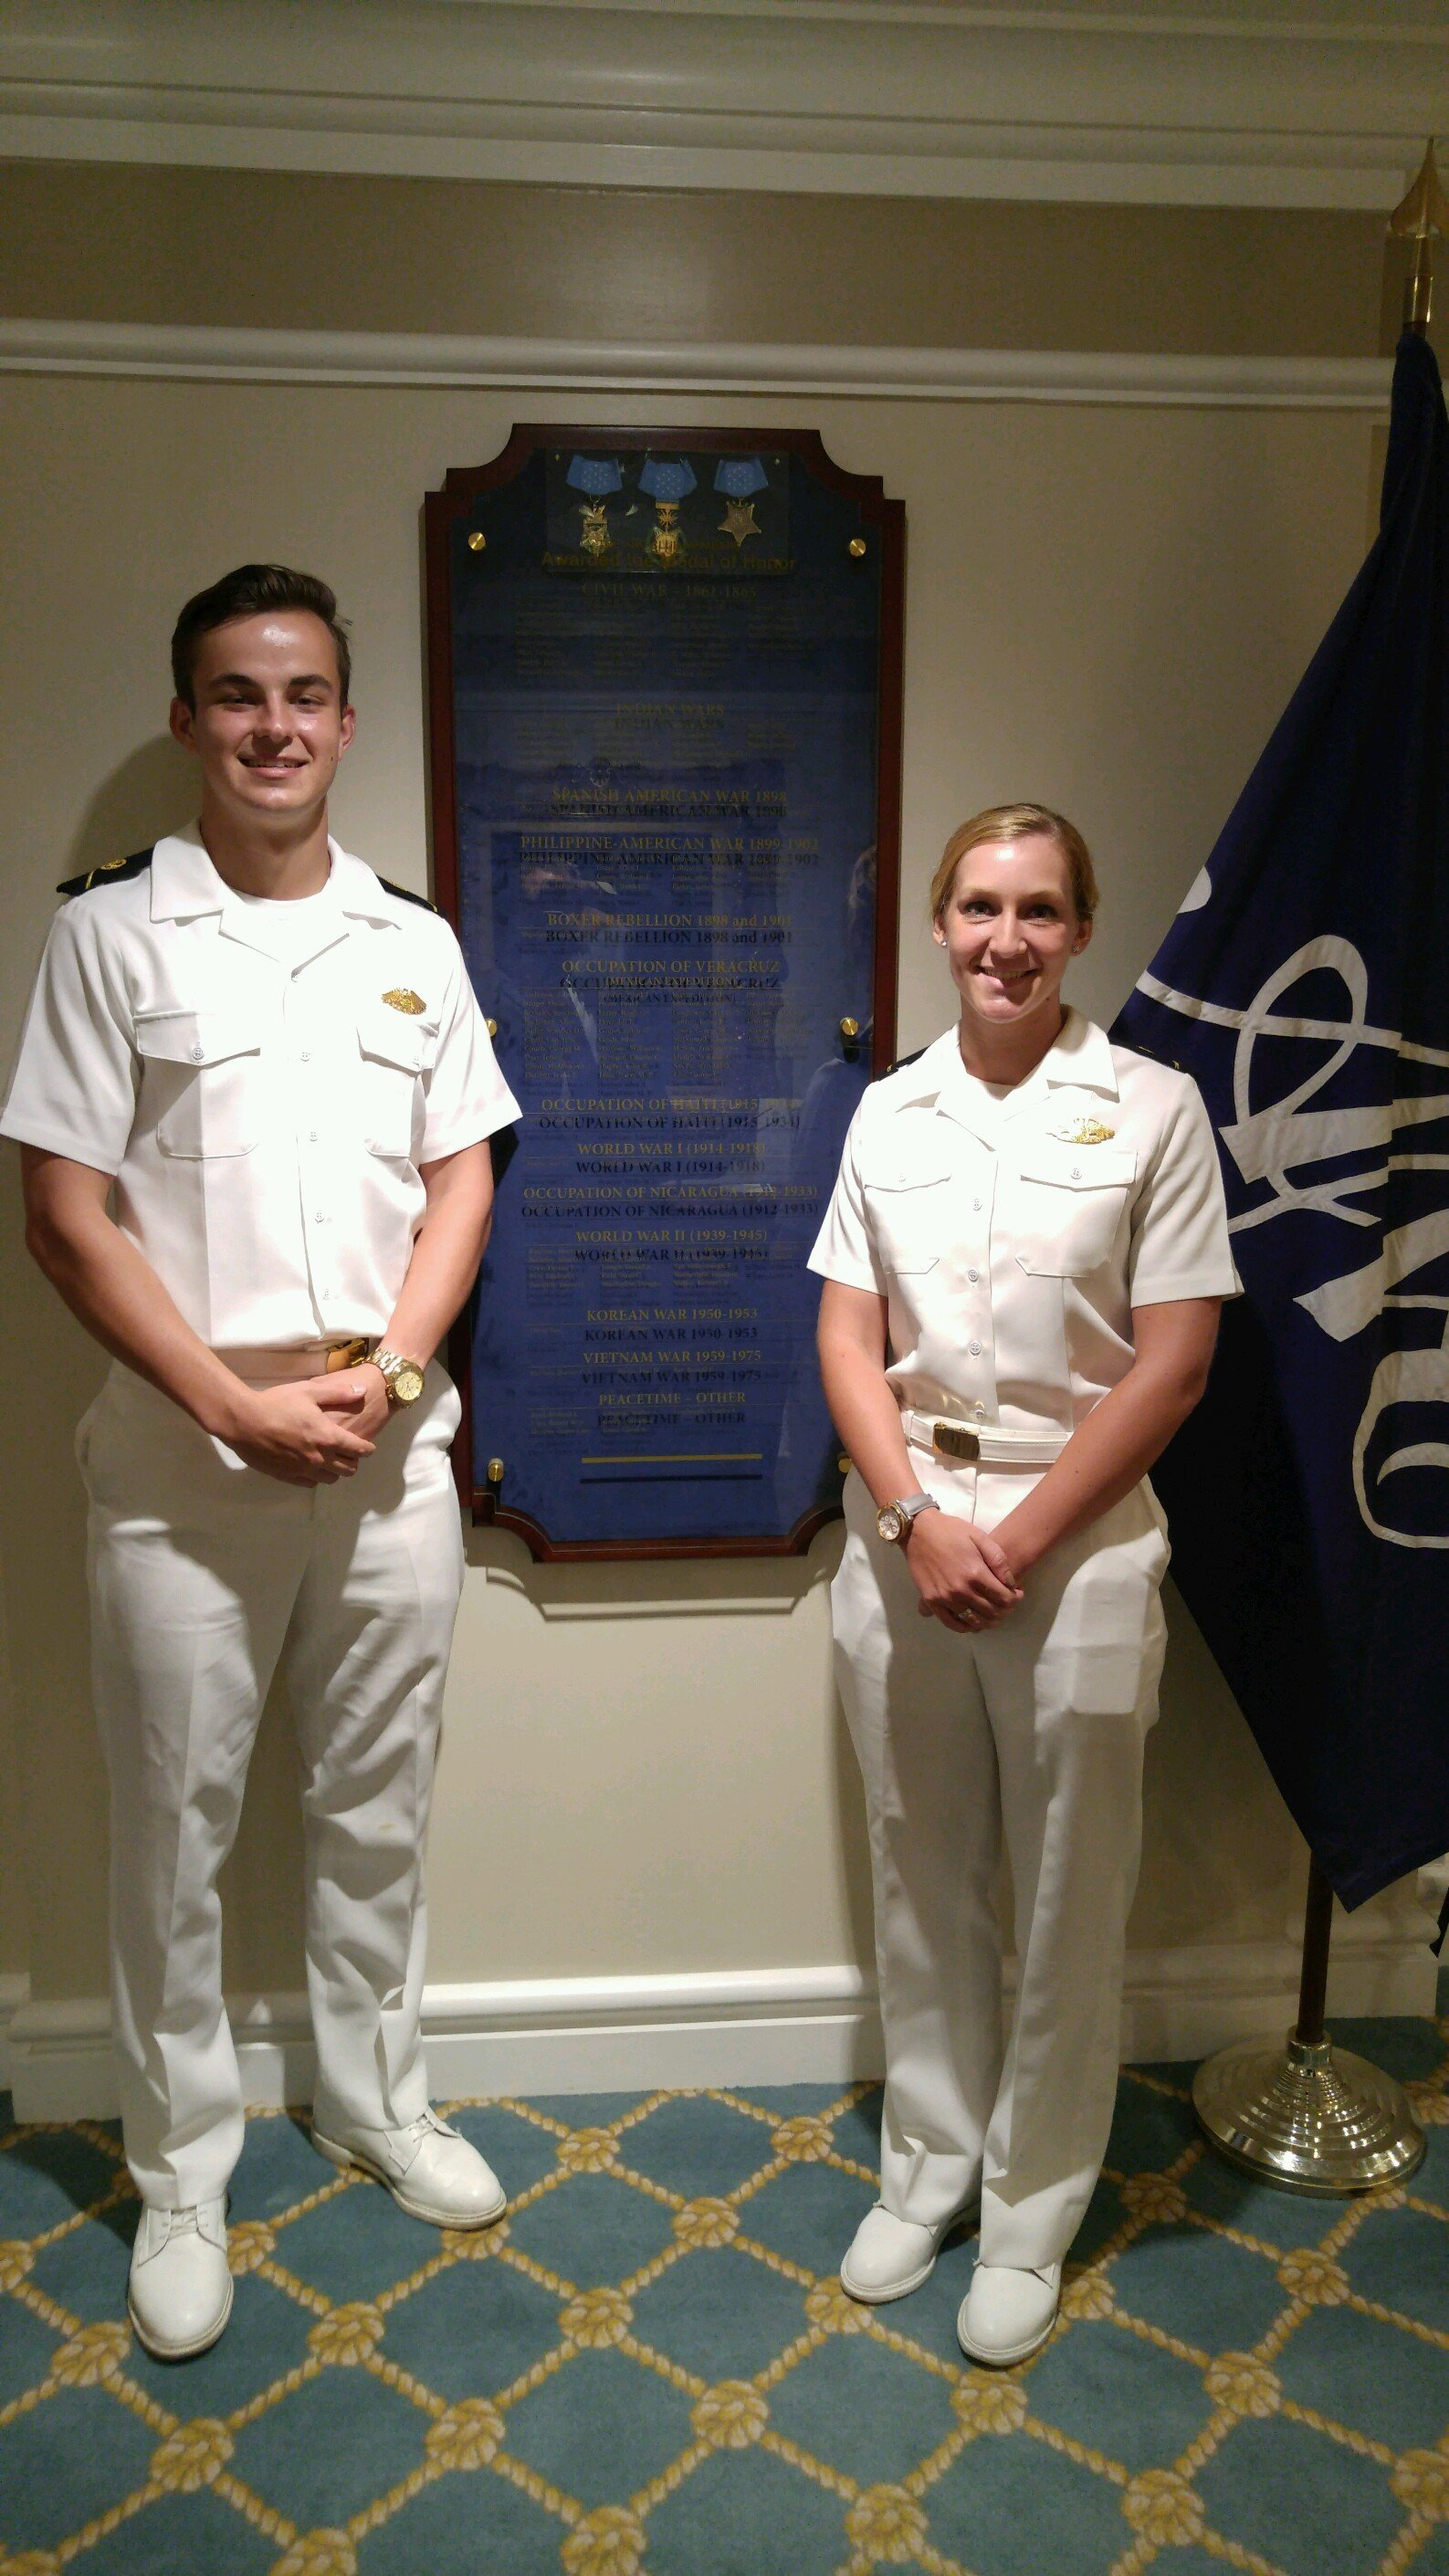 Midshipmen Carter and Bowman at the Army Navy Club, Washington DC